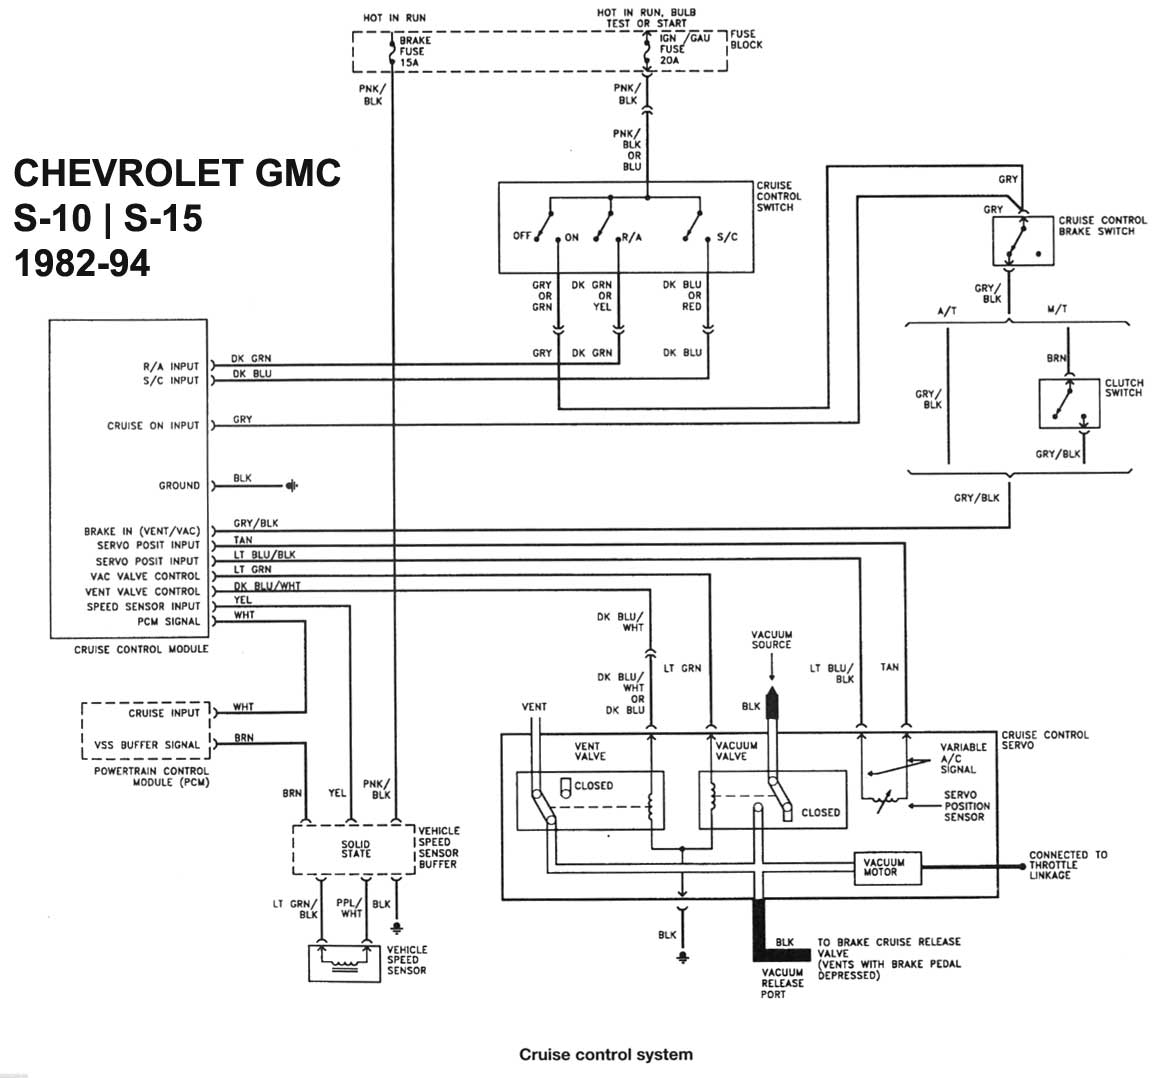 hight resolution of 1989 chevy s10 wiring diagram gm radio wiring color code chevy wiring schematics